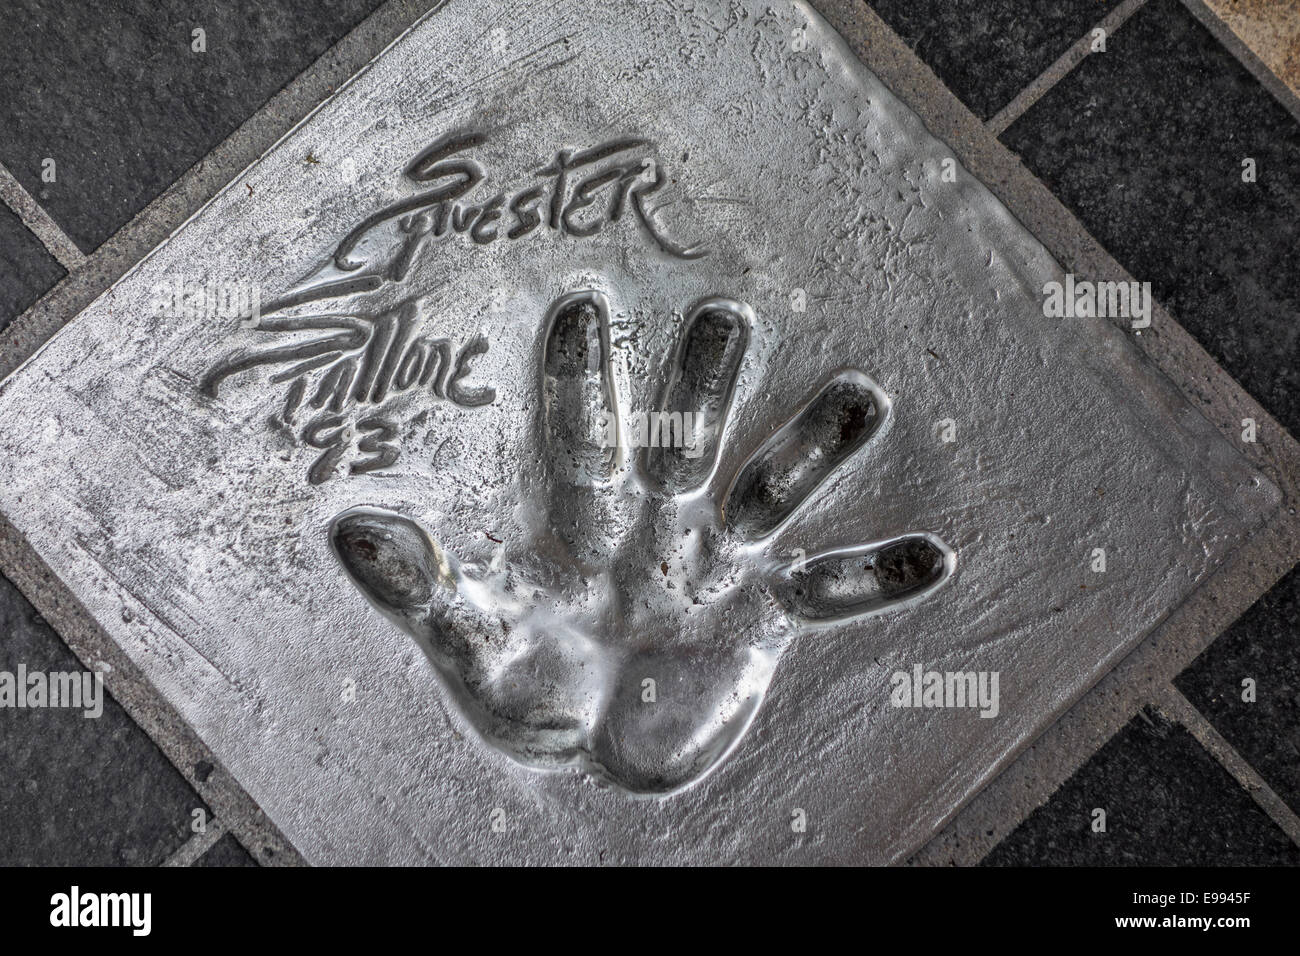 Handprint of American actor Sylvester Stallone at the Esplanade Georges Pompidou in the city Cannes, French Riviera, - Stock Image